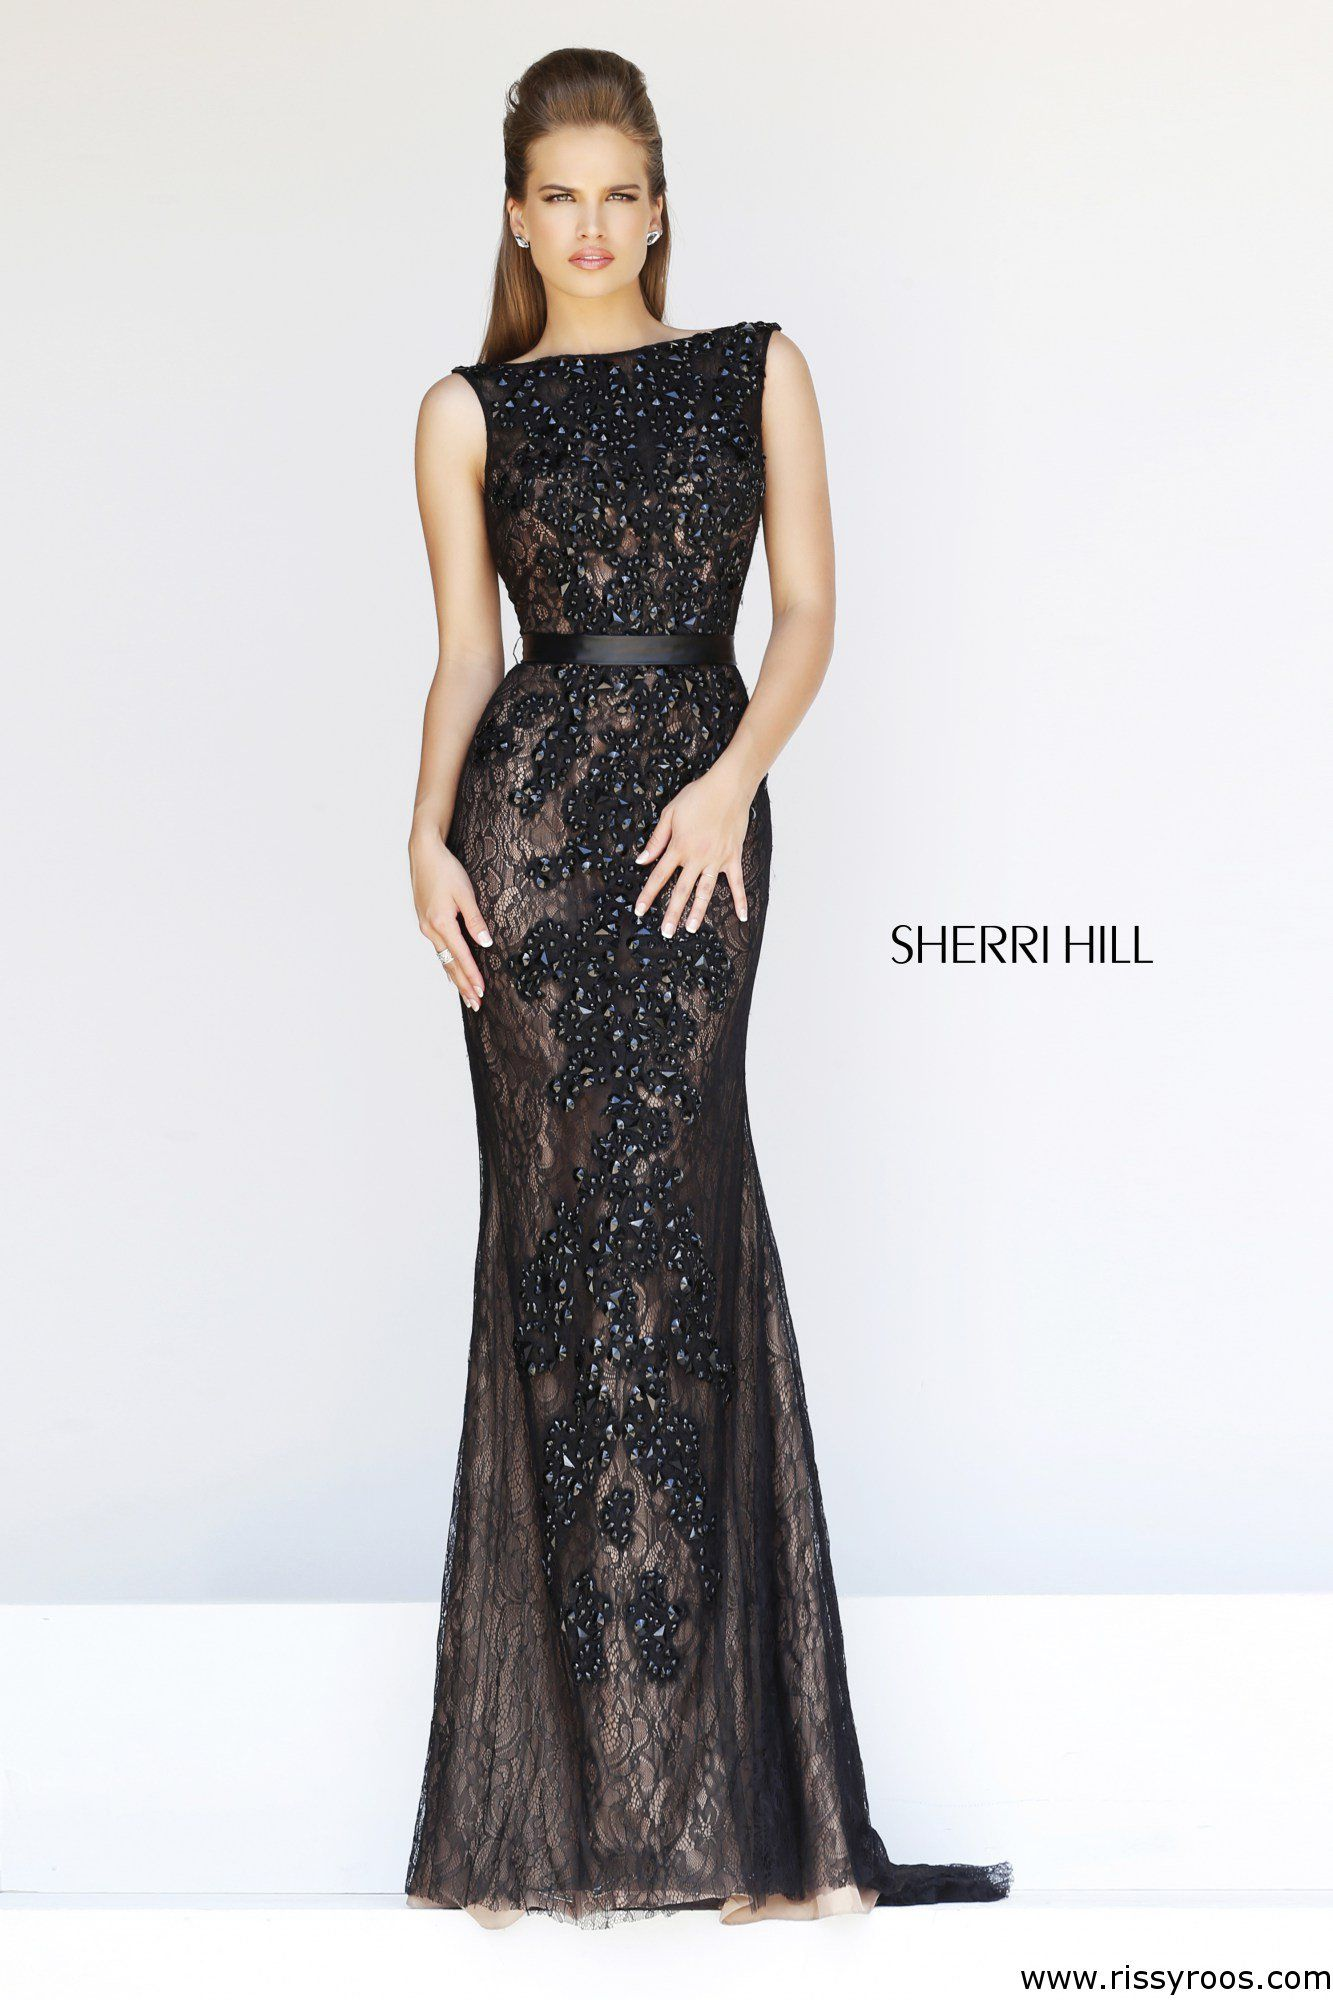 Sherri hill blacknude beaded high neck prom dresses online